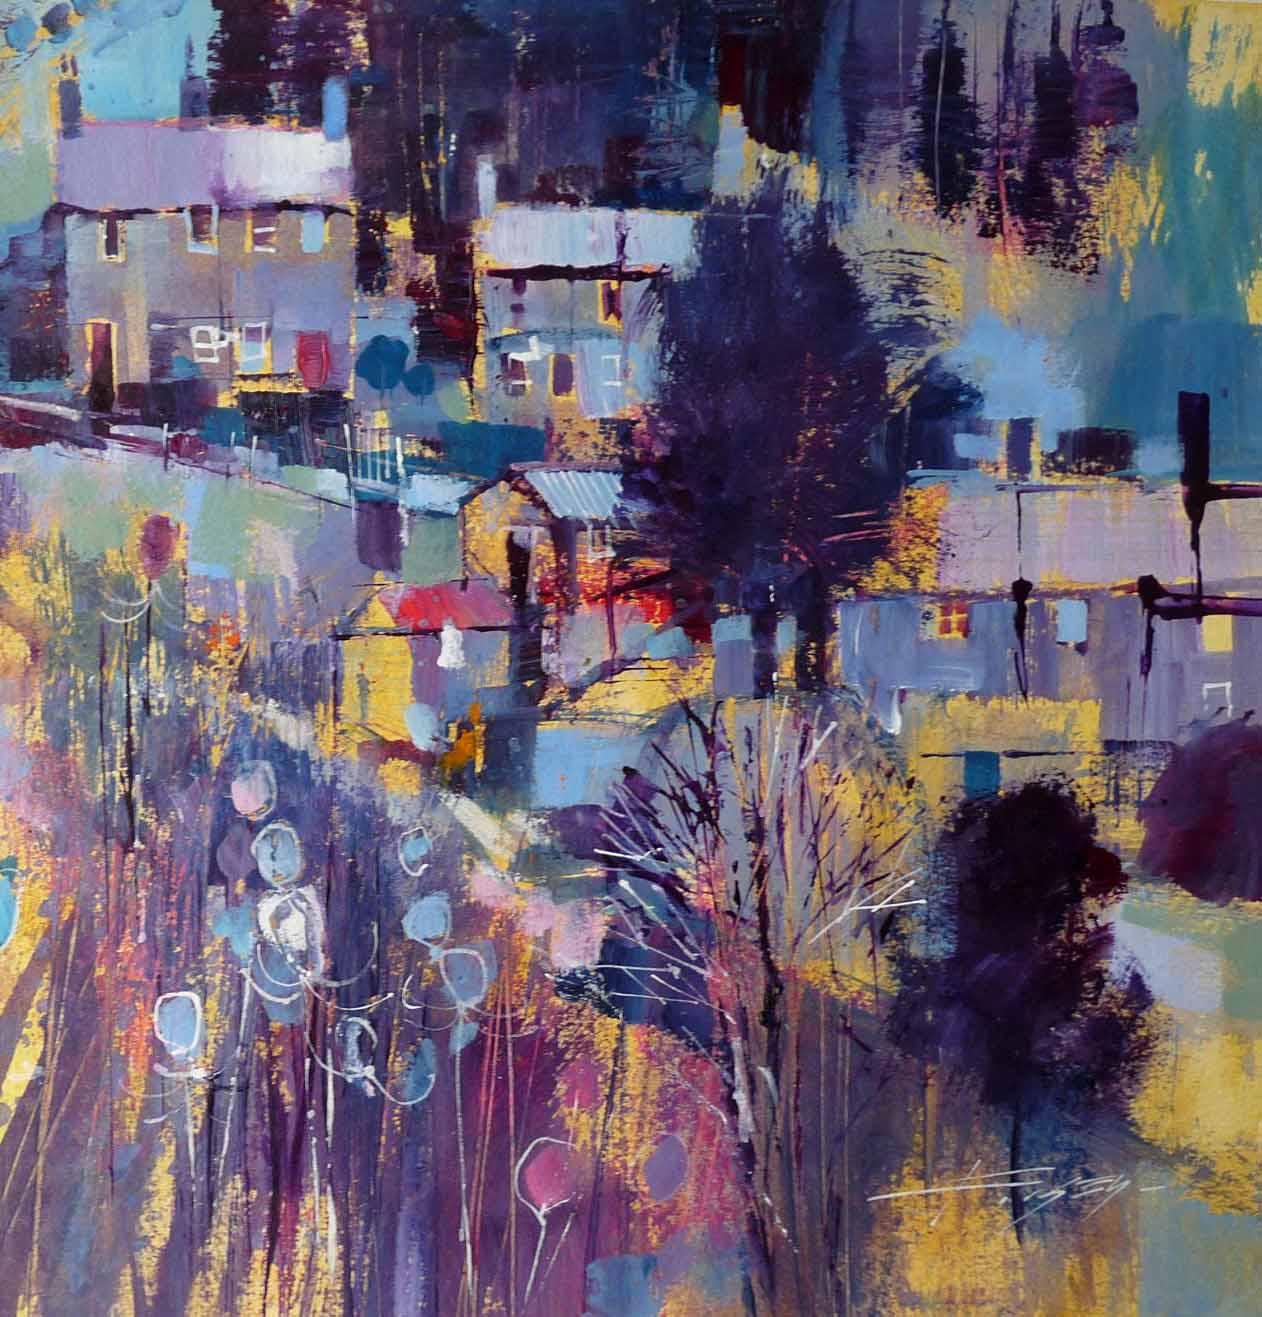 Blue frosting by Chris Forsey